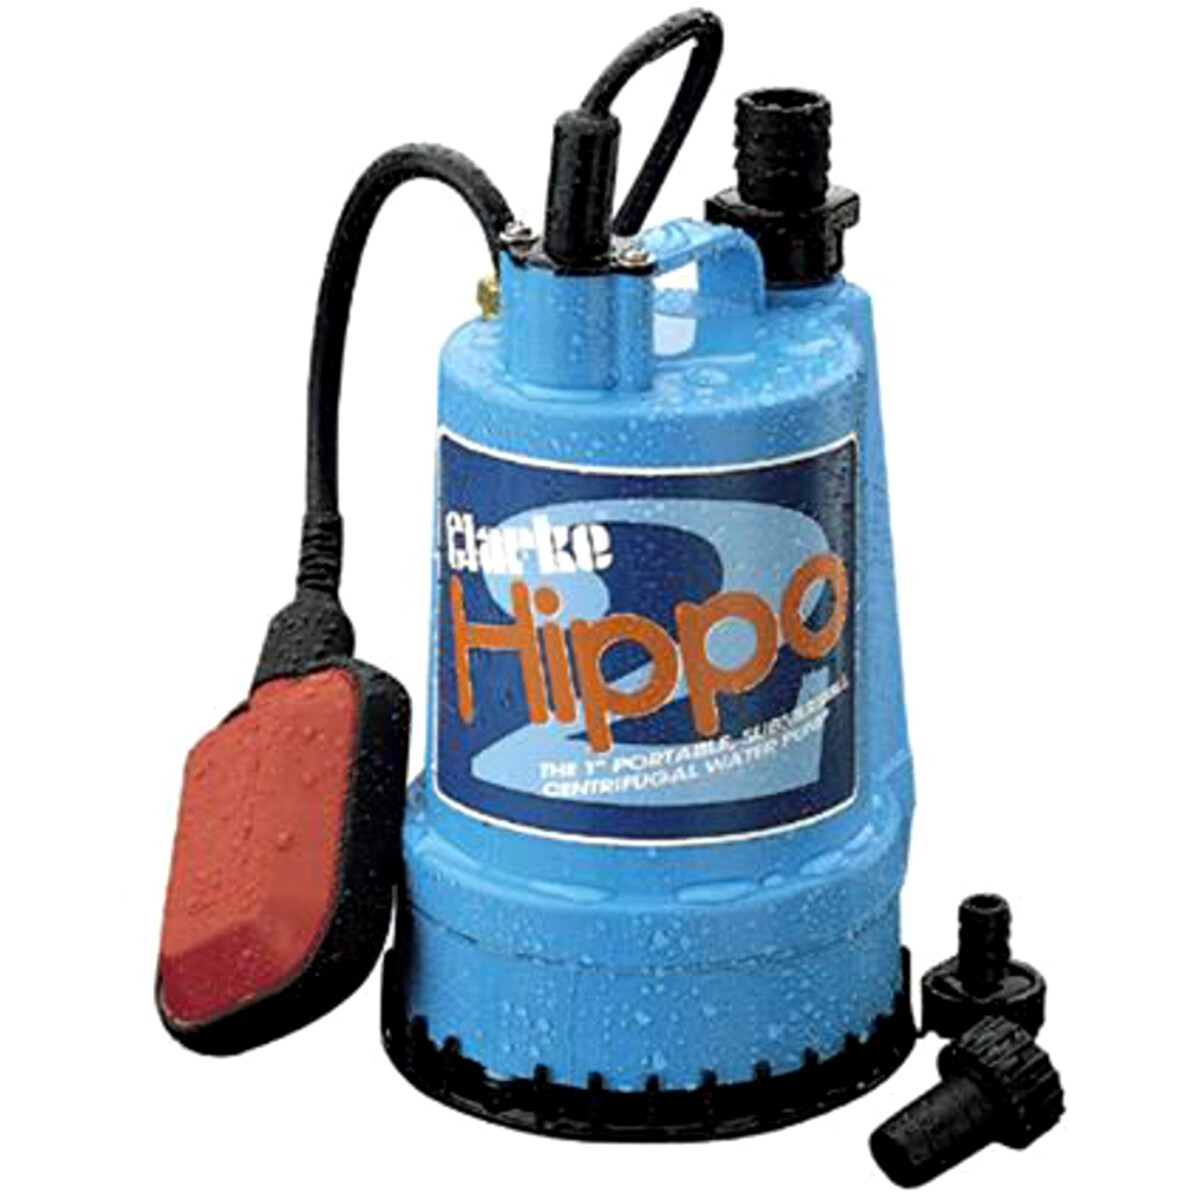 "Clarke 7230024 Hippo 2 Clean Water 250W 230v 1"" Submersible Water Pump with Float Switch"